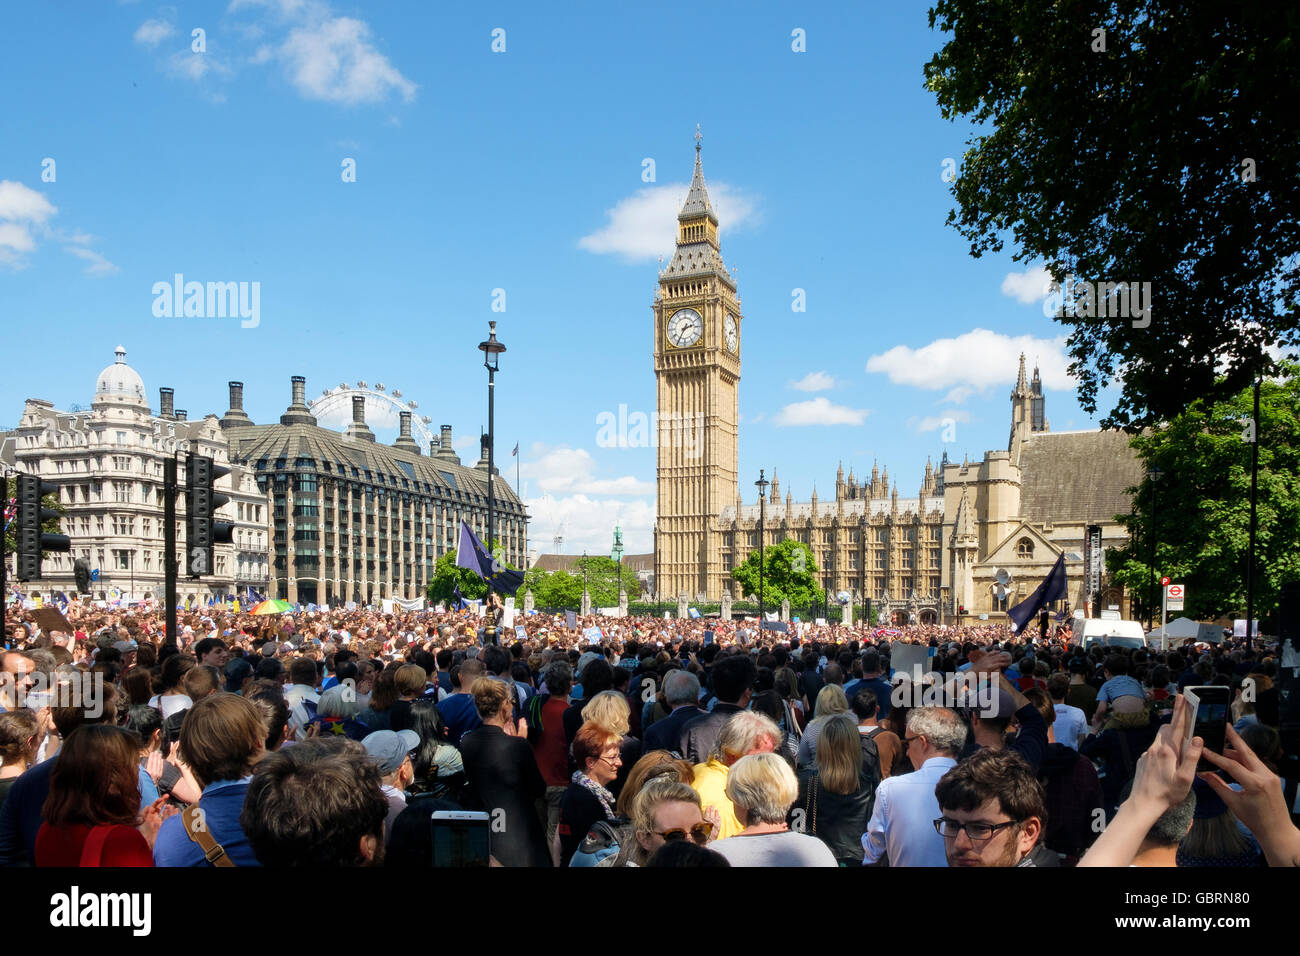 London, UK , 2 July 2016: Protesters at Parliament Square on the March for Europe demonstration - Stock Image